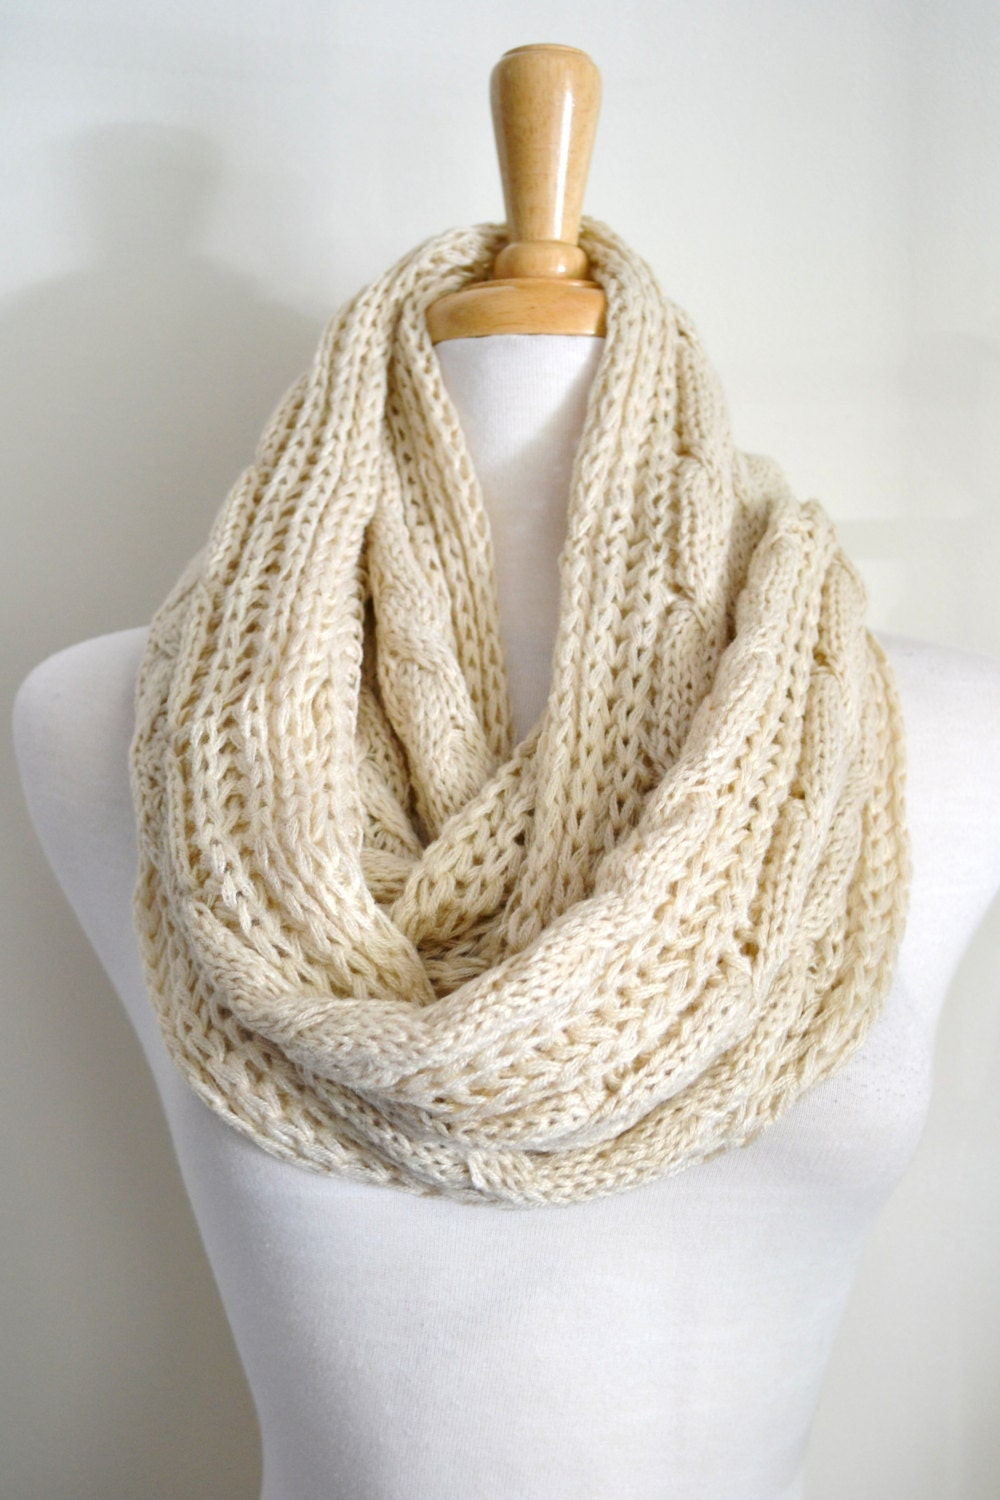 Cable Knit Infinity Scarf Knitting Pattern : Oatmeal Creme Beige Cable Knit Infinity Loop Scarf Snood